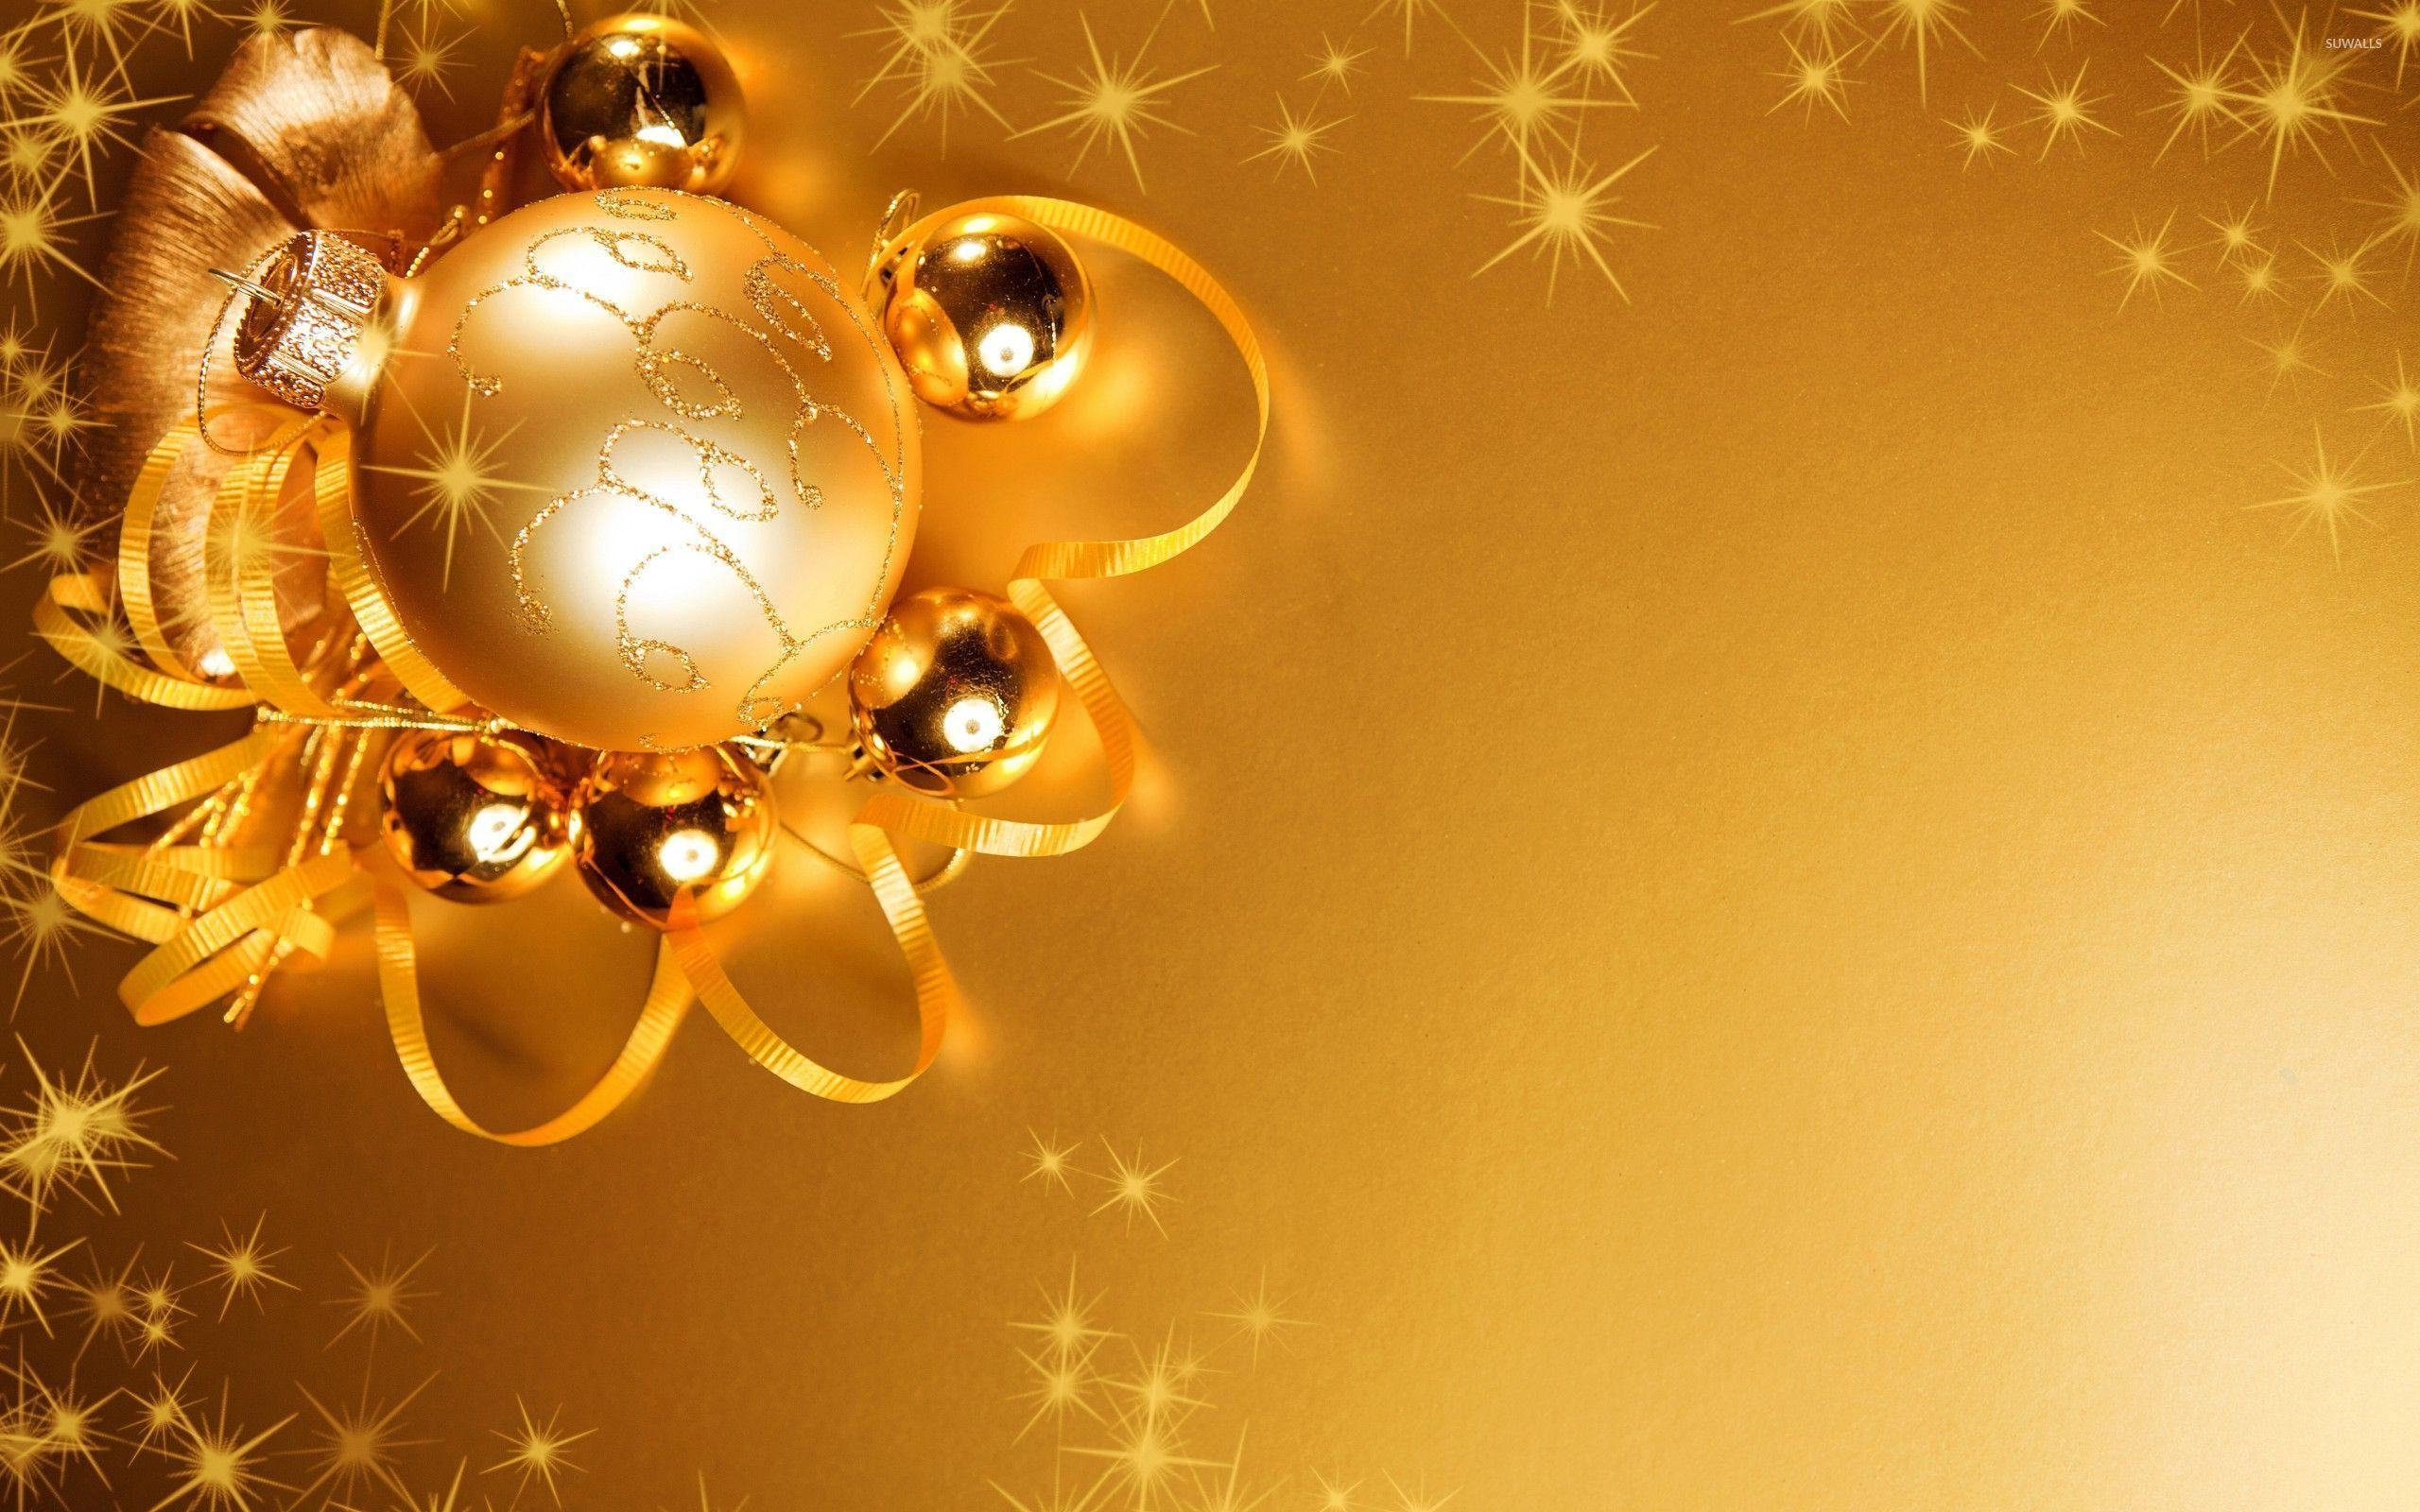 Lights reflecting in the golden Christmas decorations wallpapers